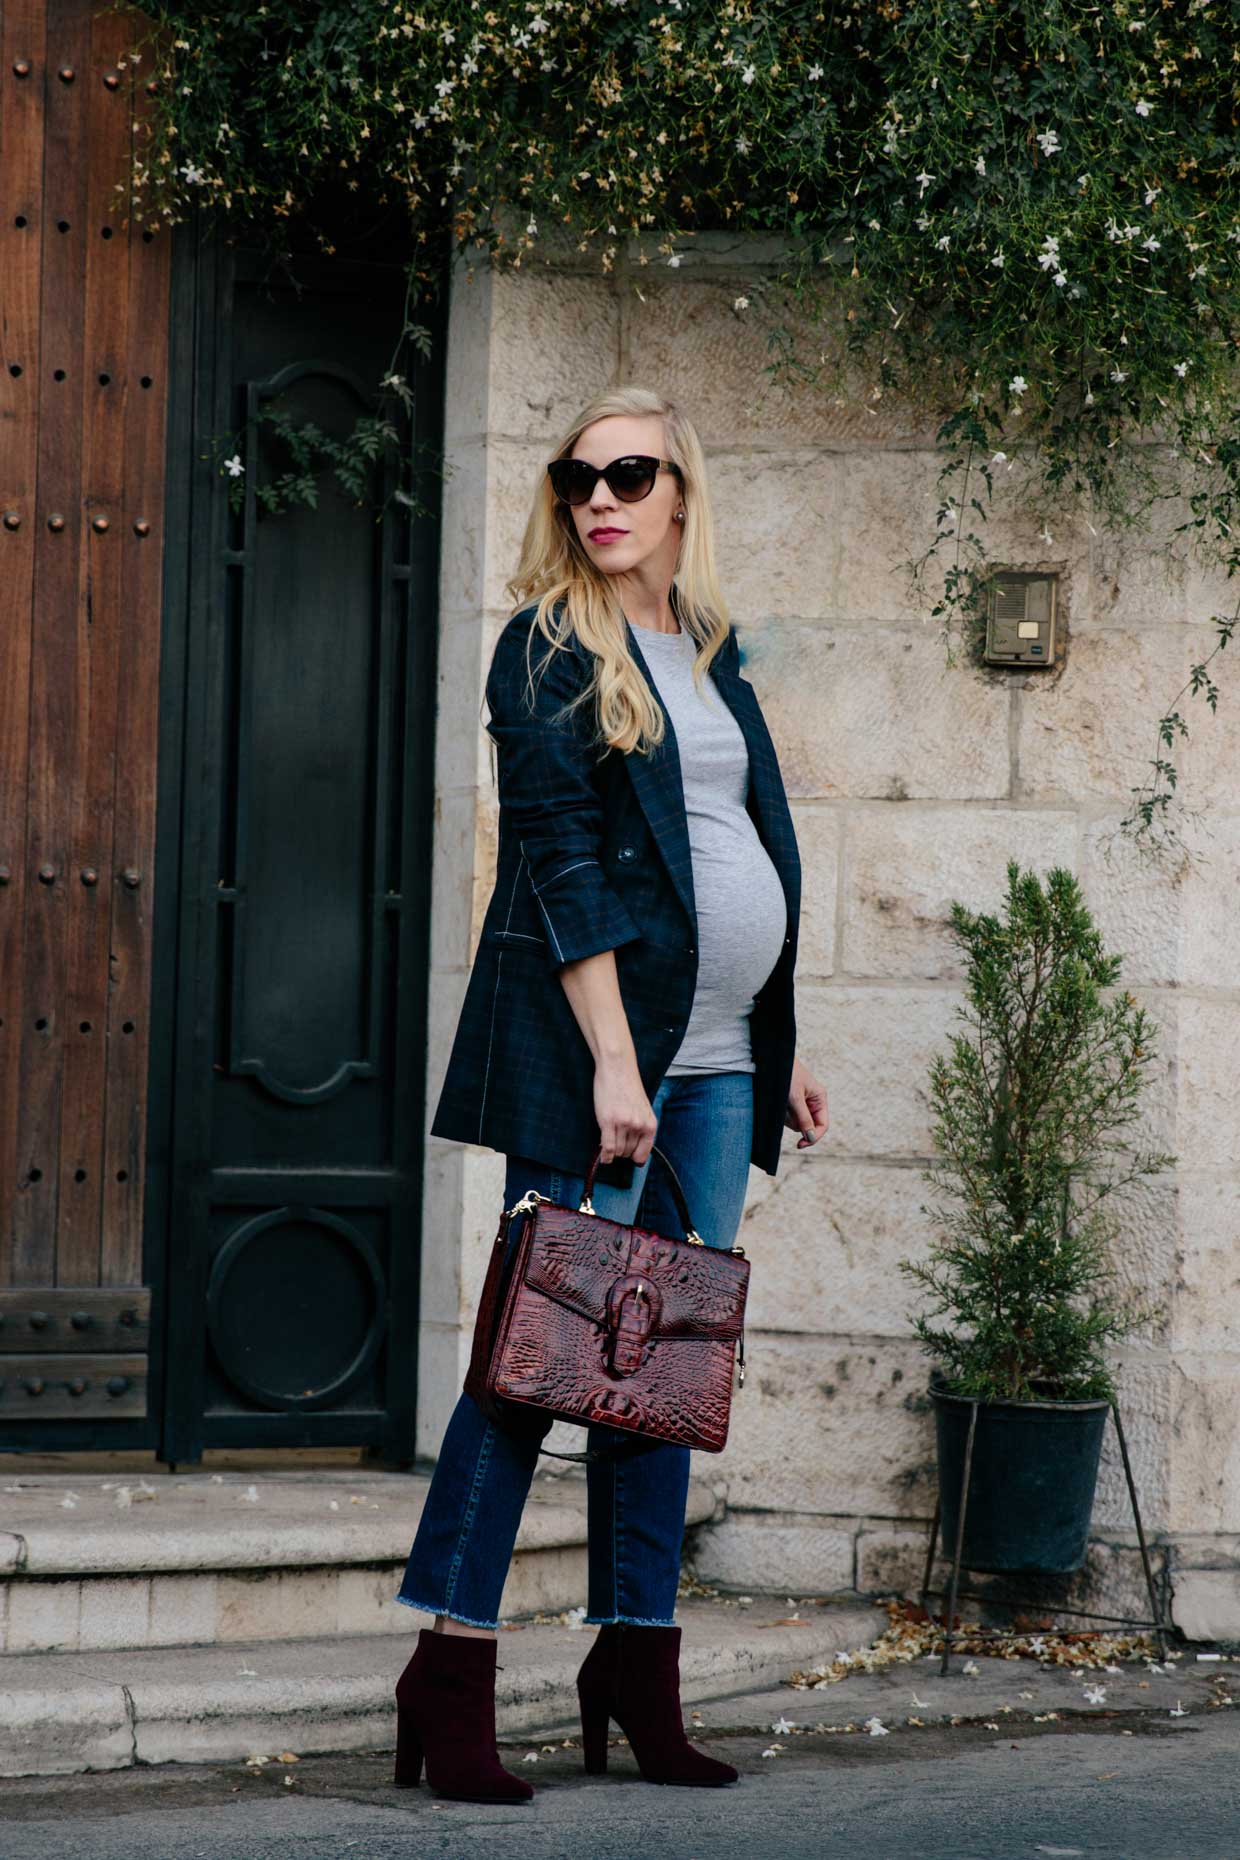 Meagan-Brandon-fashion-blogger-wears-plaid-blazer-with-straight-leg-jeans-and-booties-fall-maternity-outfit-top-trends-for-fall-2017-plaid-blazer.jpg